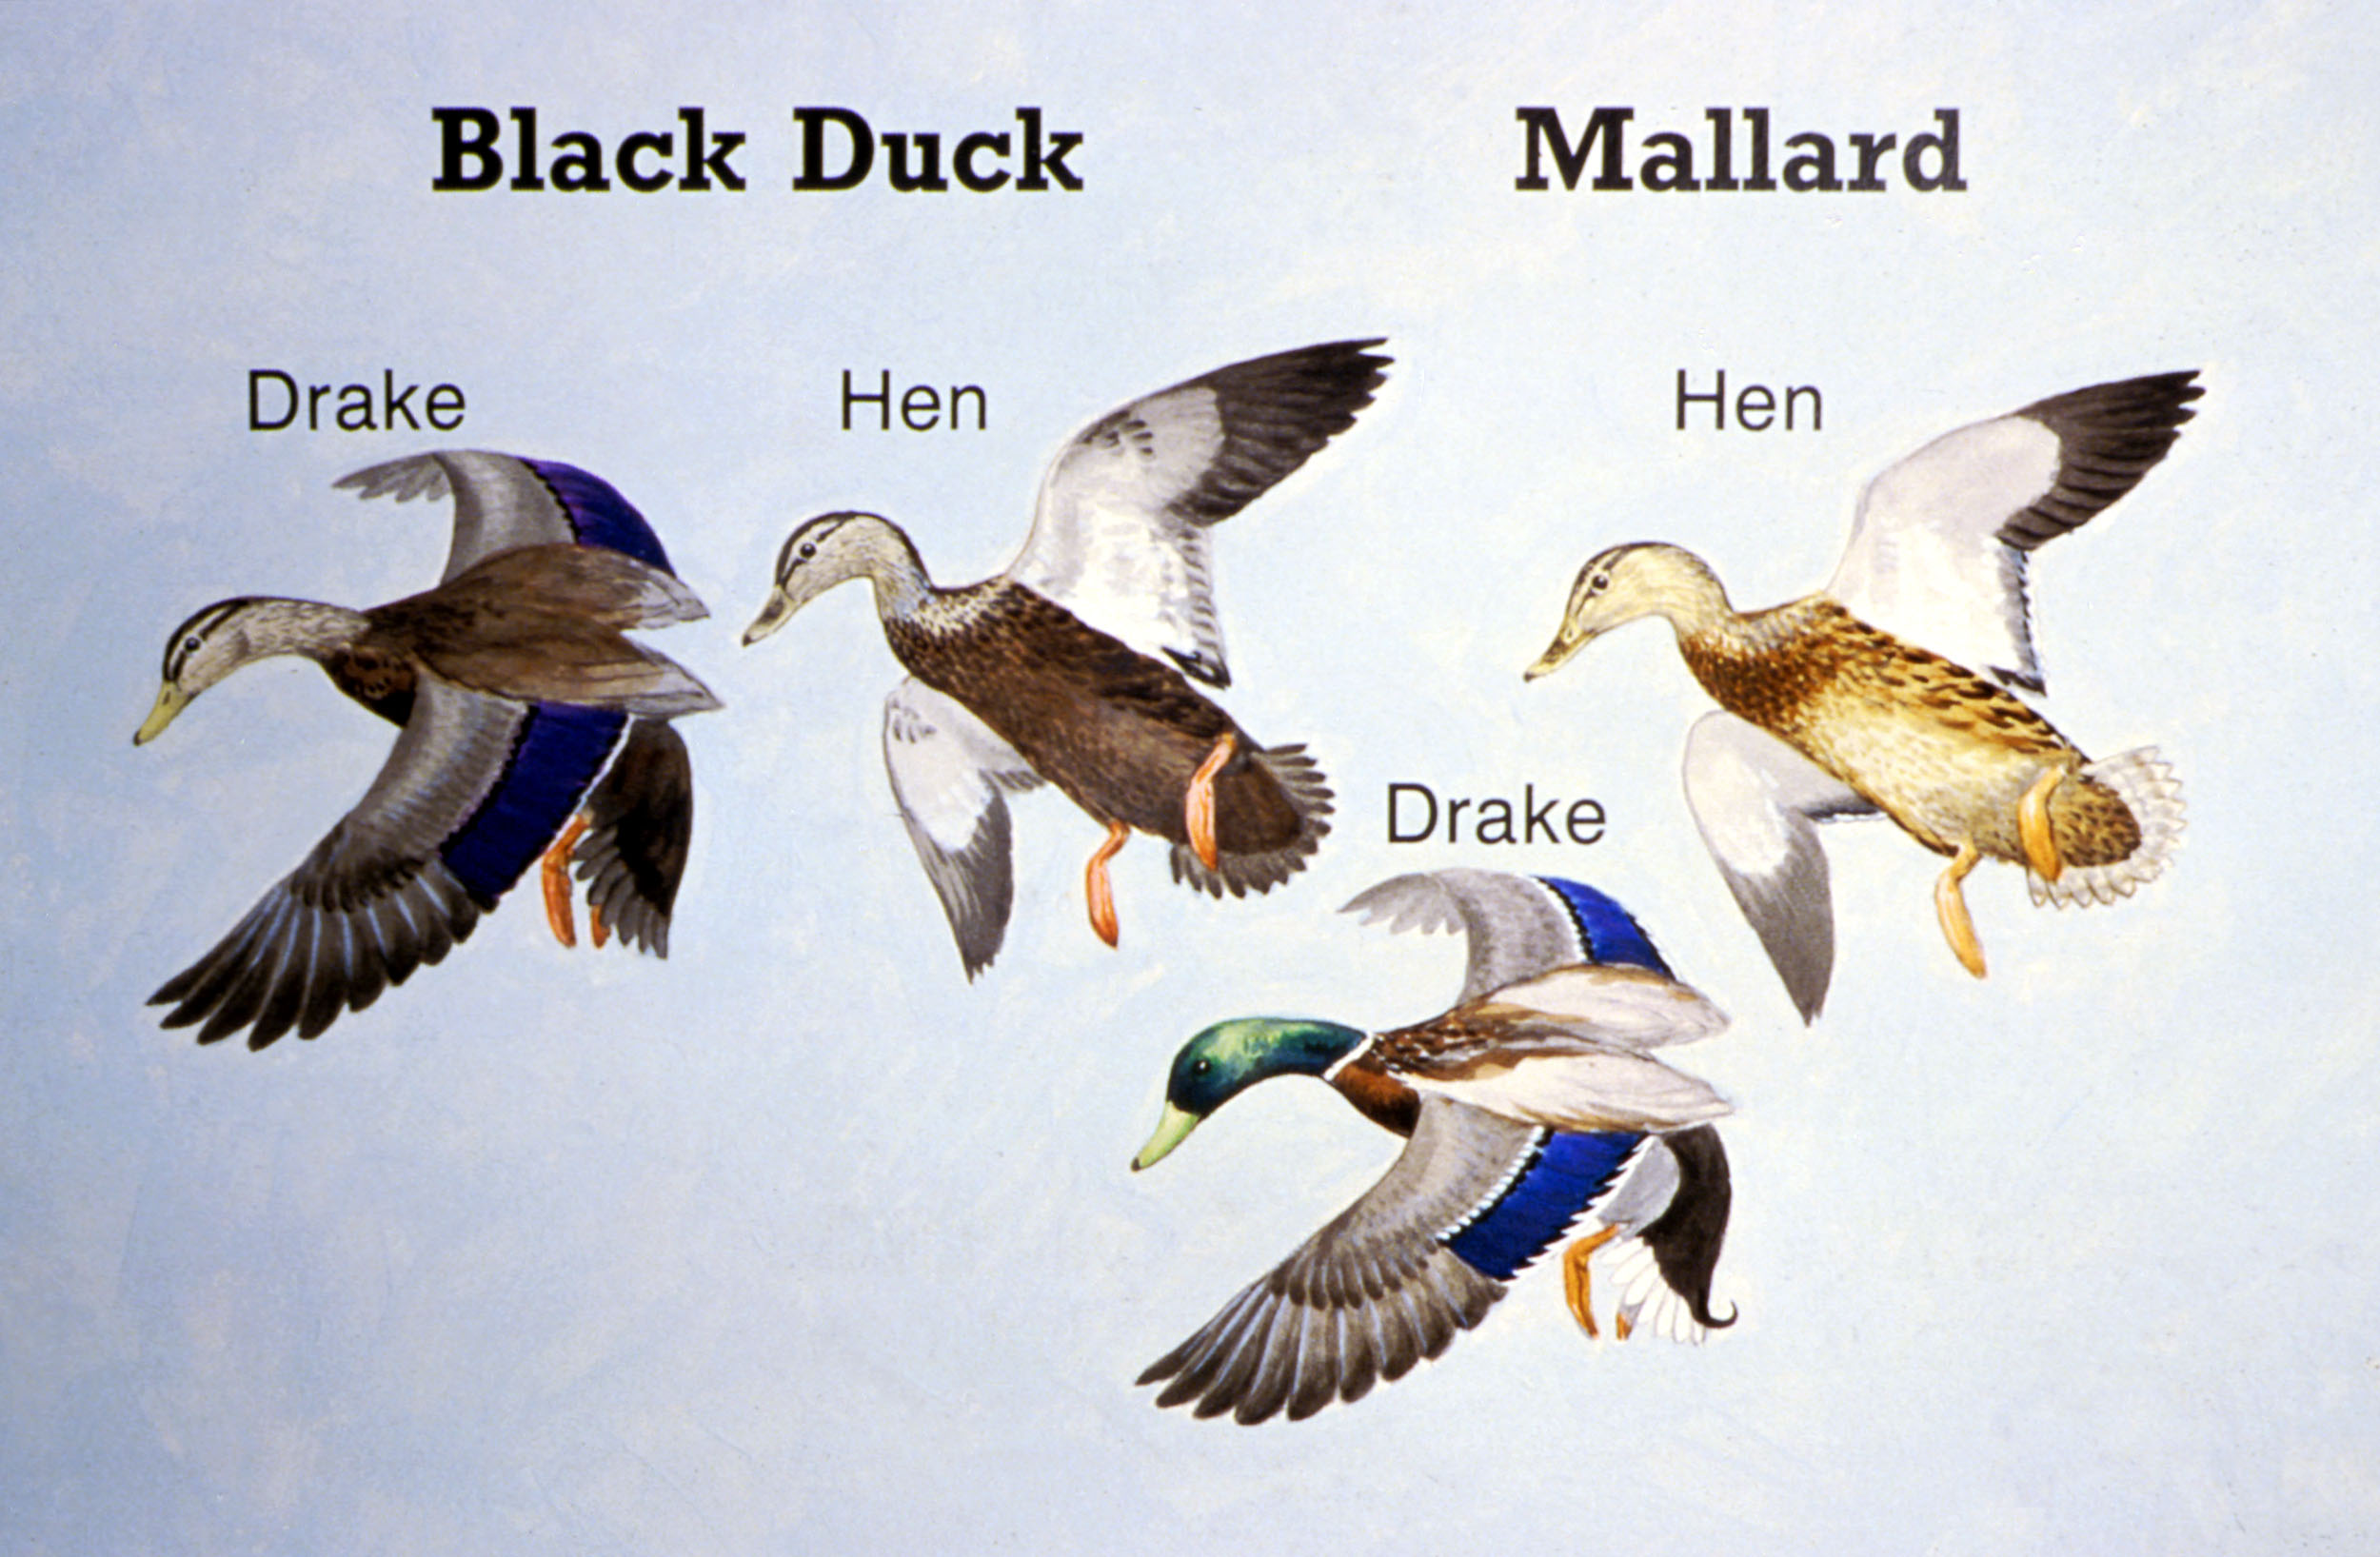 Black Duck Vs Mallard